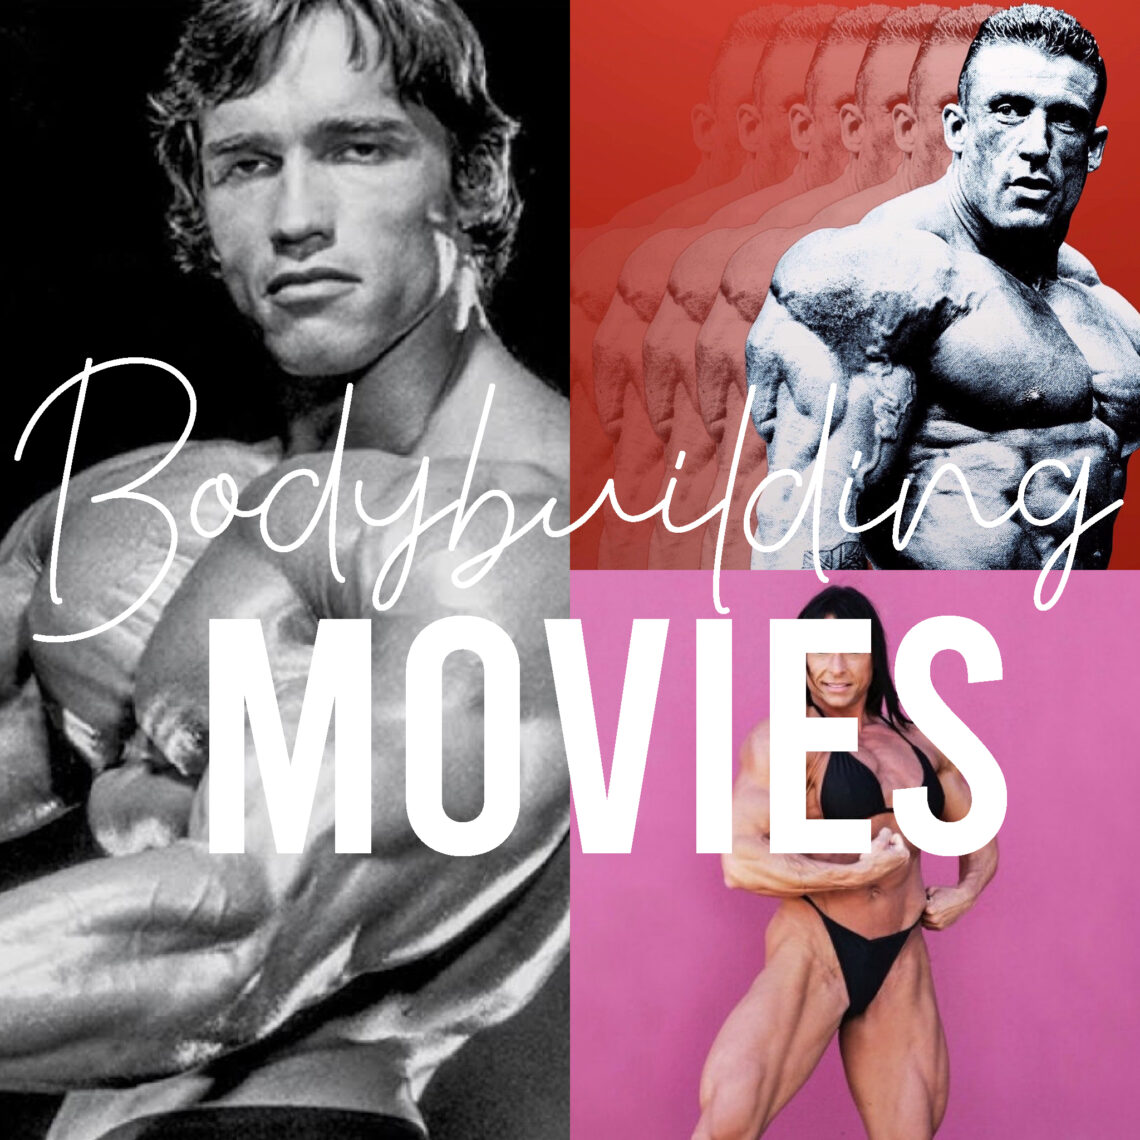 Must see bodybuilding movies